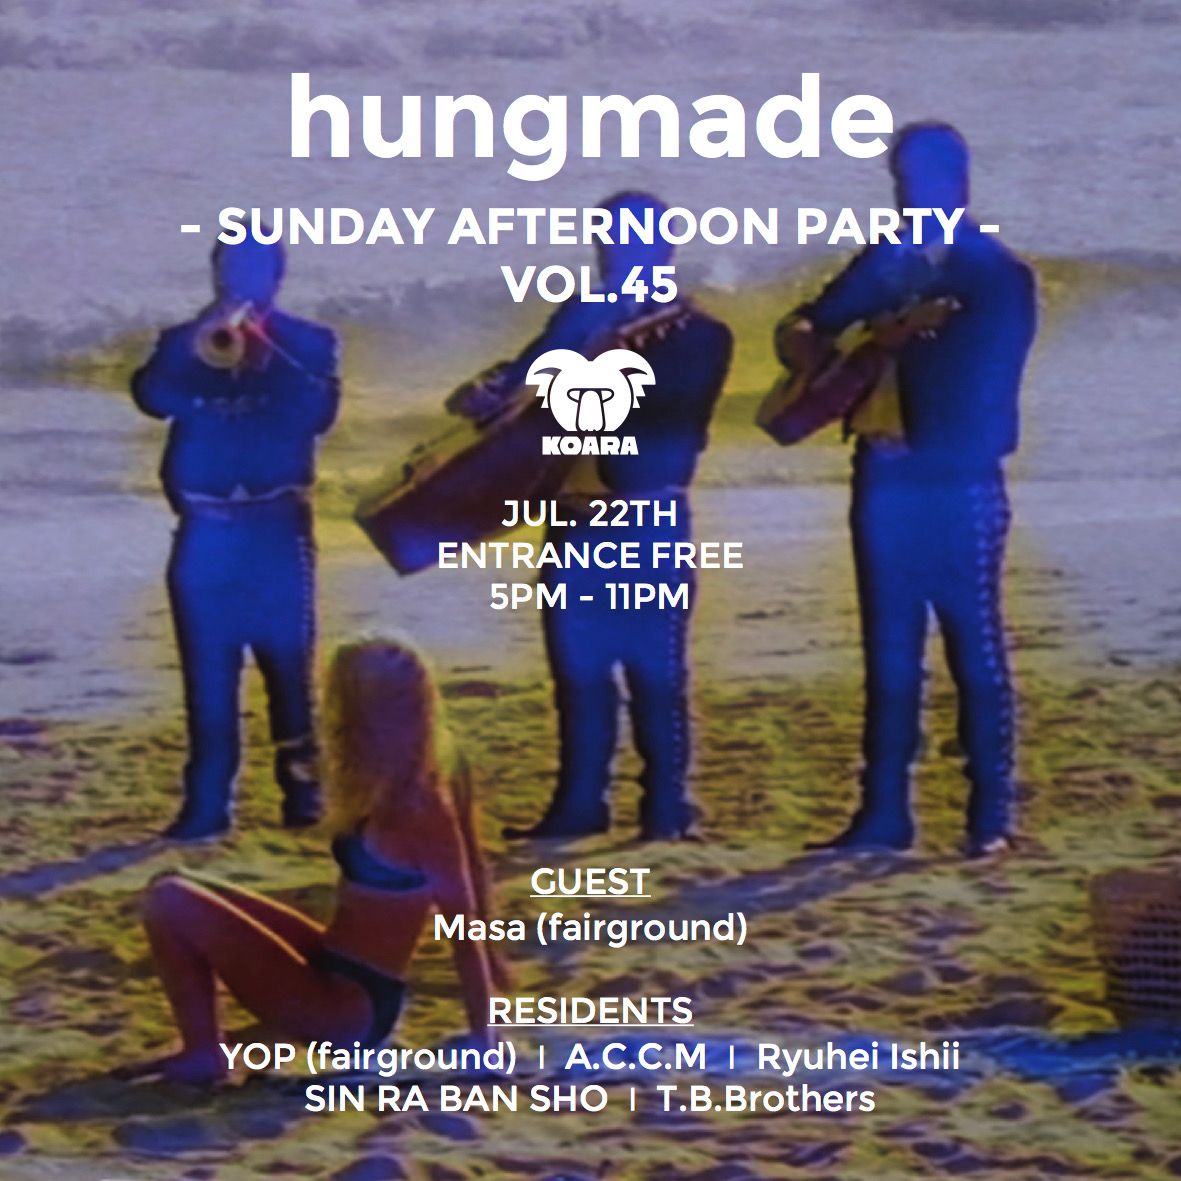 hungmade Vol.45